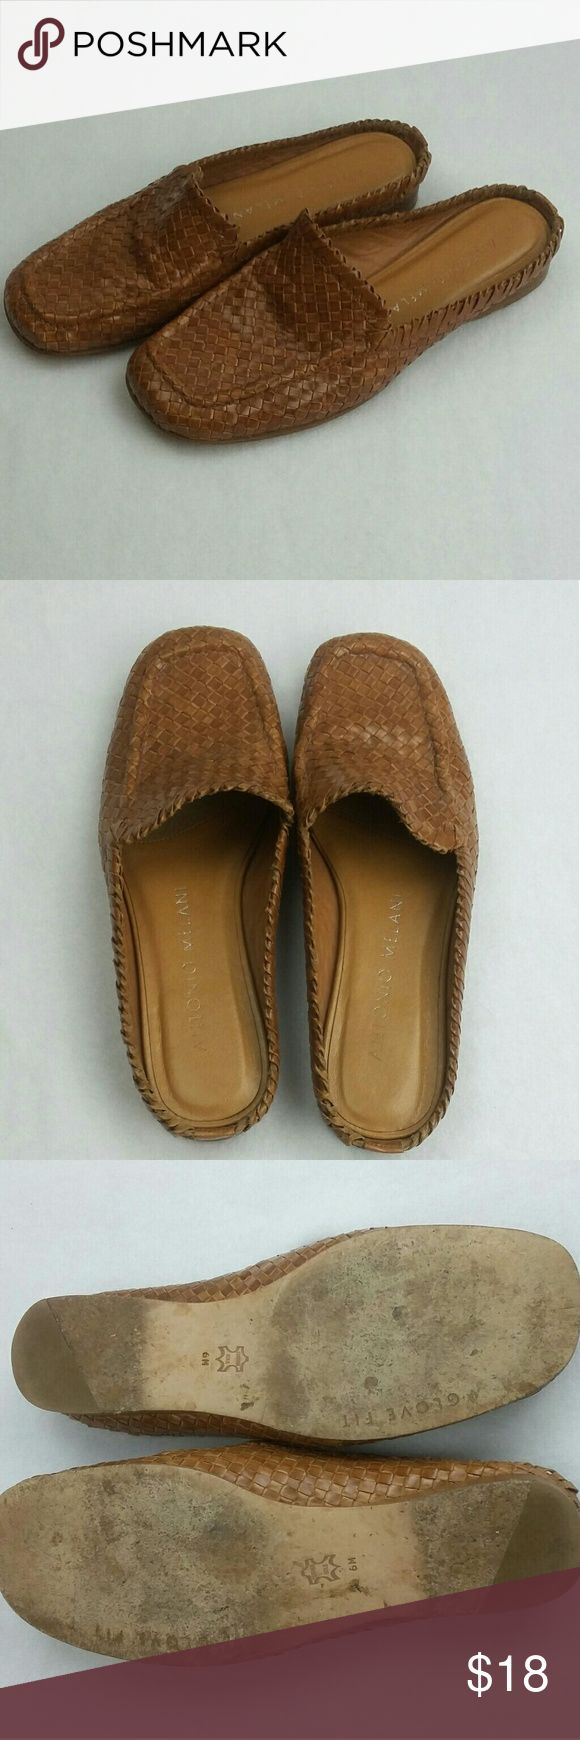 """Antonio Melani  Leather Gloves For slide shoes 6 These are a beautiful pair of Antonio Melani slide style loafers , shoes in a Tan weave .  """"GENTLY WORN """"  Bundle for extra savings!   I love any reasonable offers   0146 ANTONIO MELANI Shoes Flats & Loafers"""